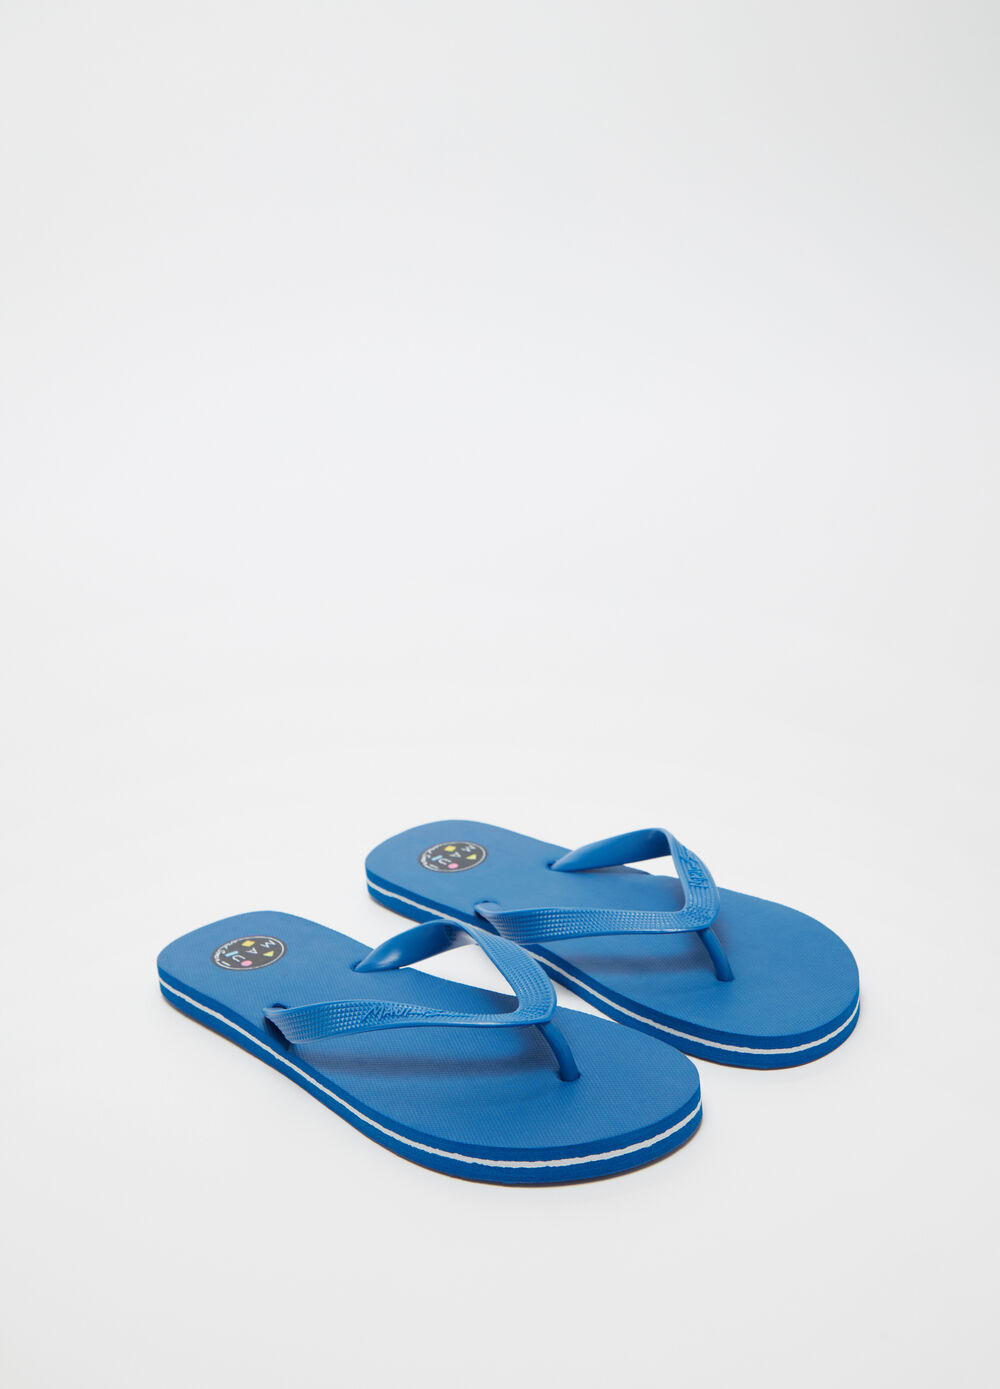 Maui and Sons printed thong sandal